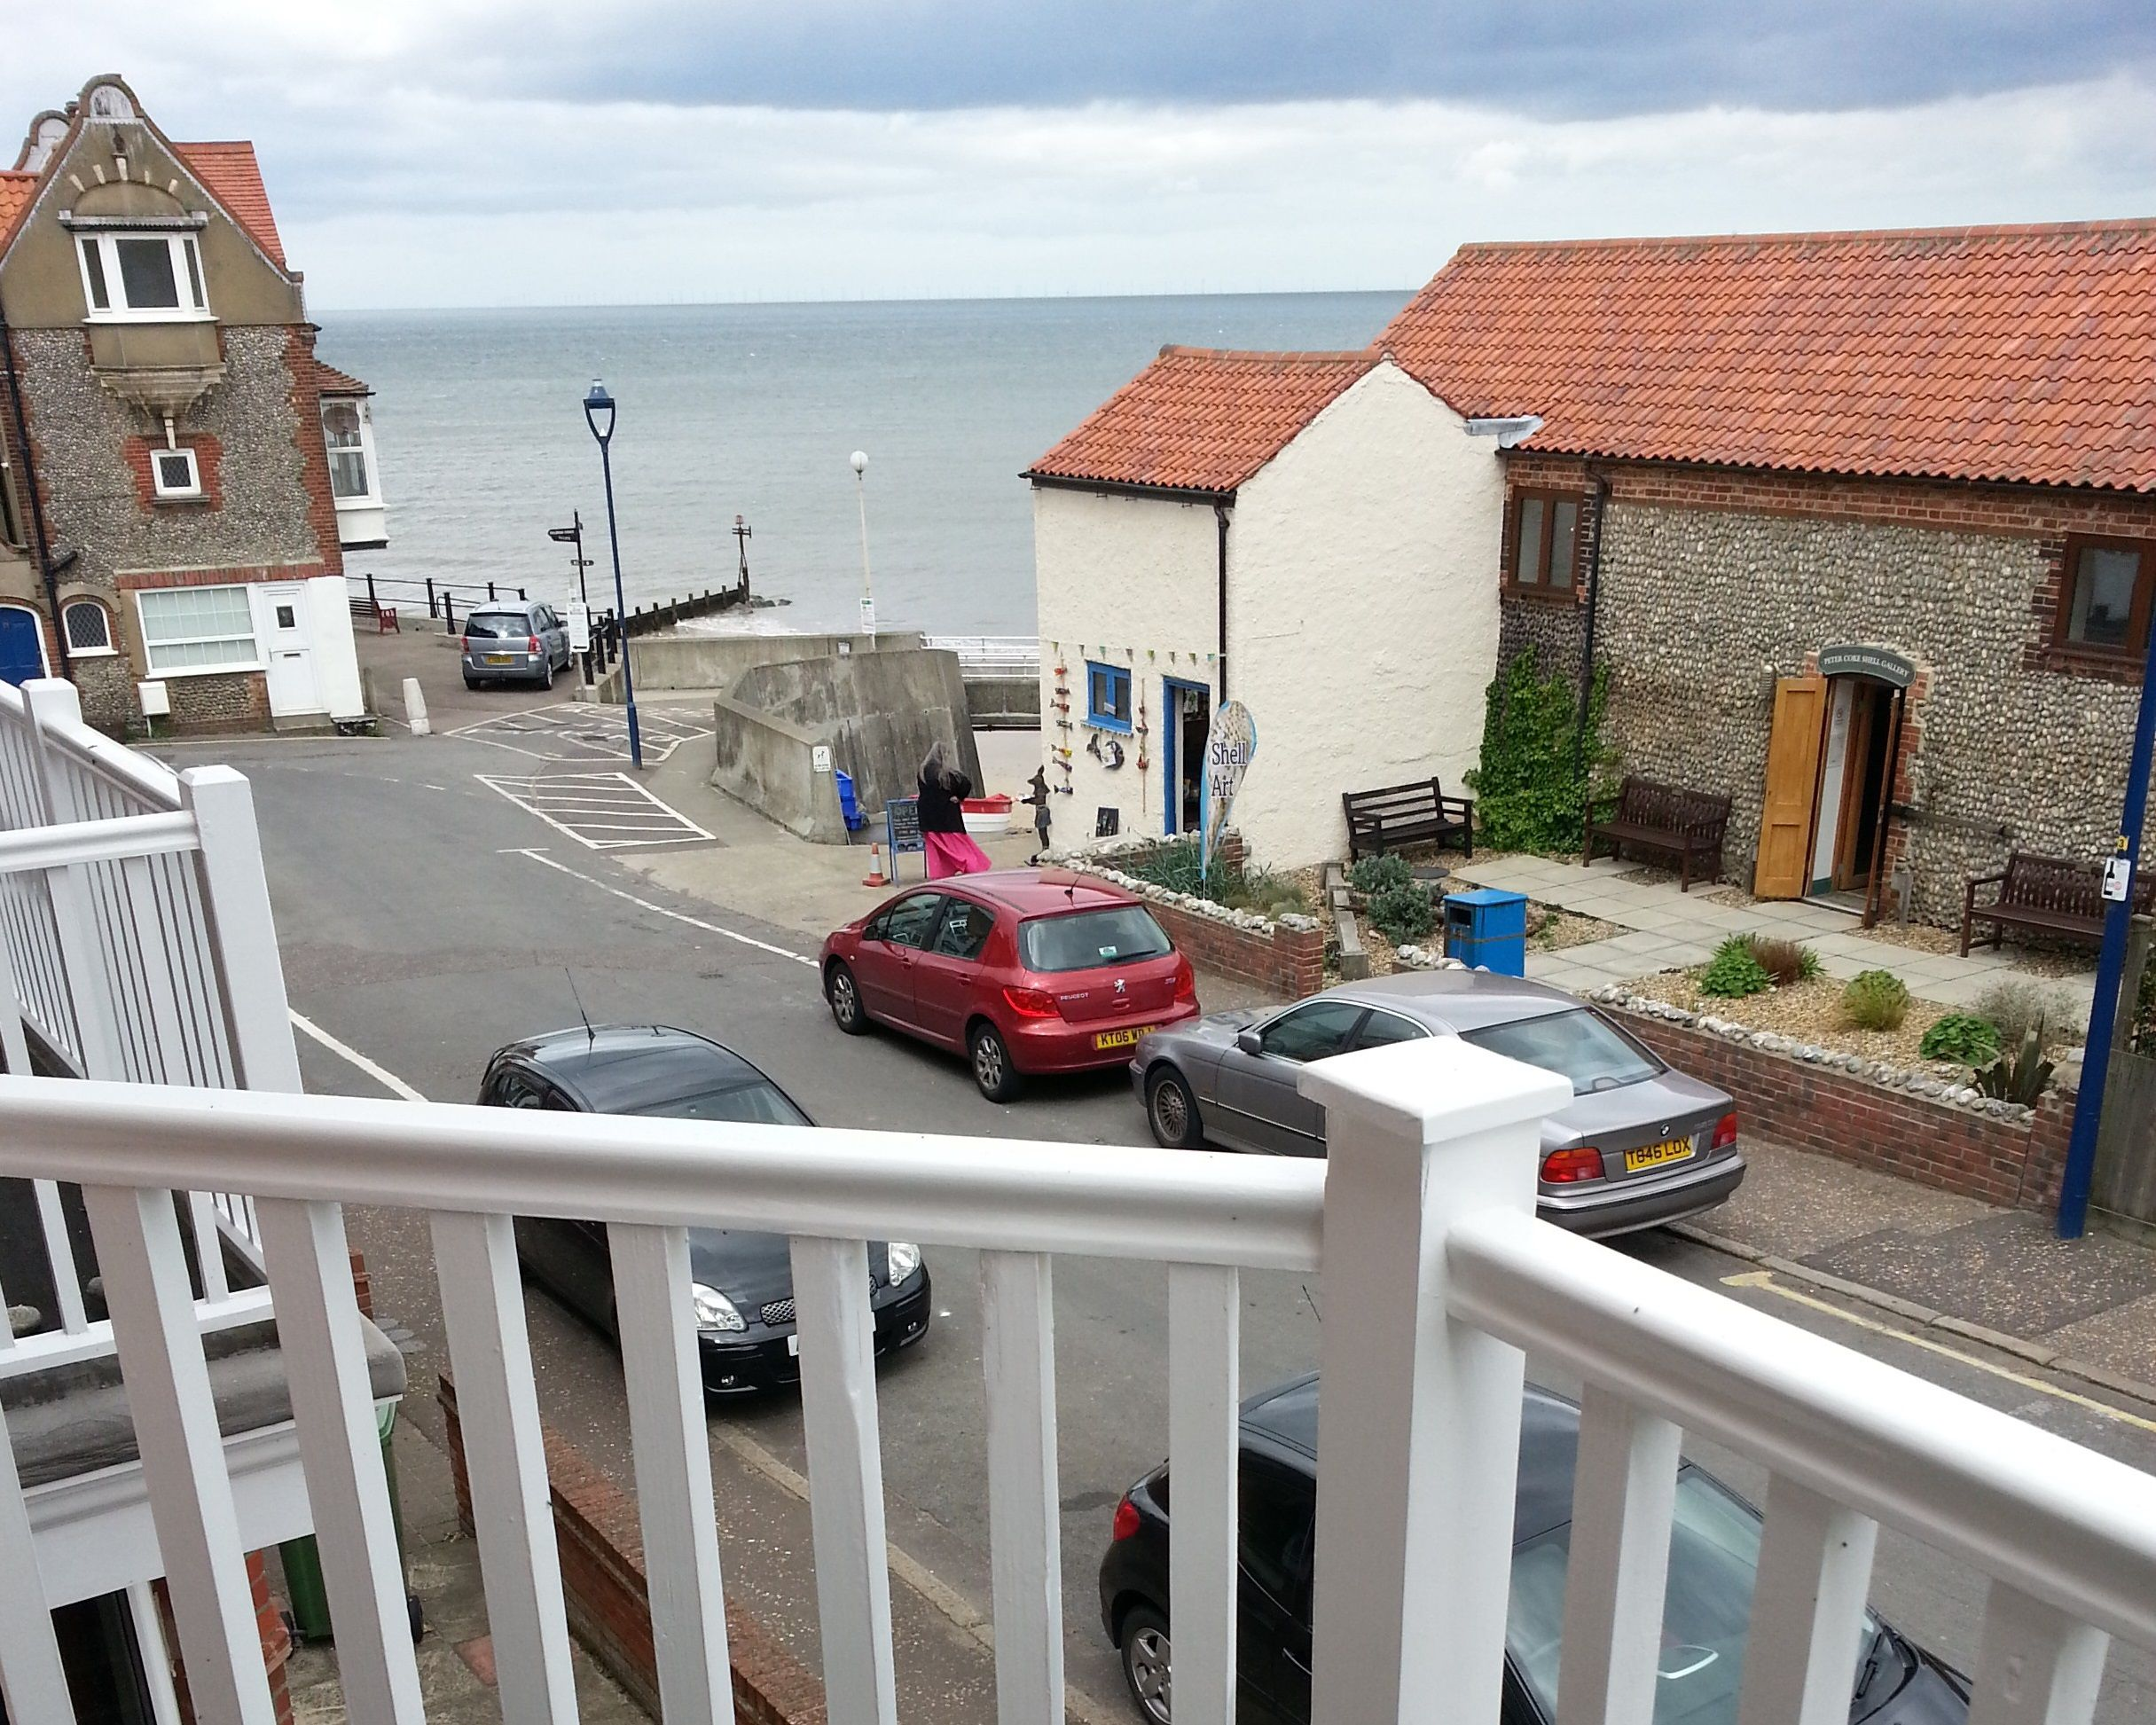 CANCELLATION 12th-19th August 2017 Do you want to be beside the seaside this summer? If yes then Sandrock House is the property for you! - 3 storeys of spacious living, with wonderful seaviews and a balcony from which to watch the world go by! Visit http://www.keysholidays.co.uk/search-properties/view/385820 for more information or call 01263 823010 #keysholidays #selfcatering #holidays @keys.holidays